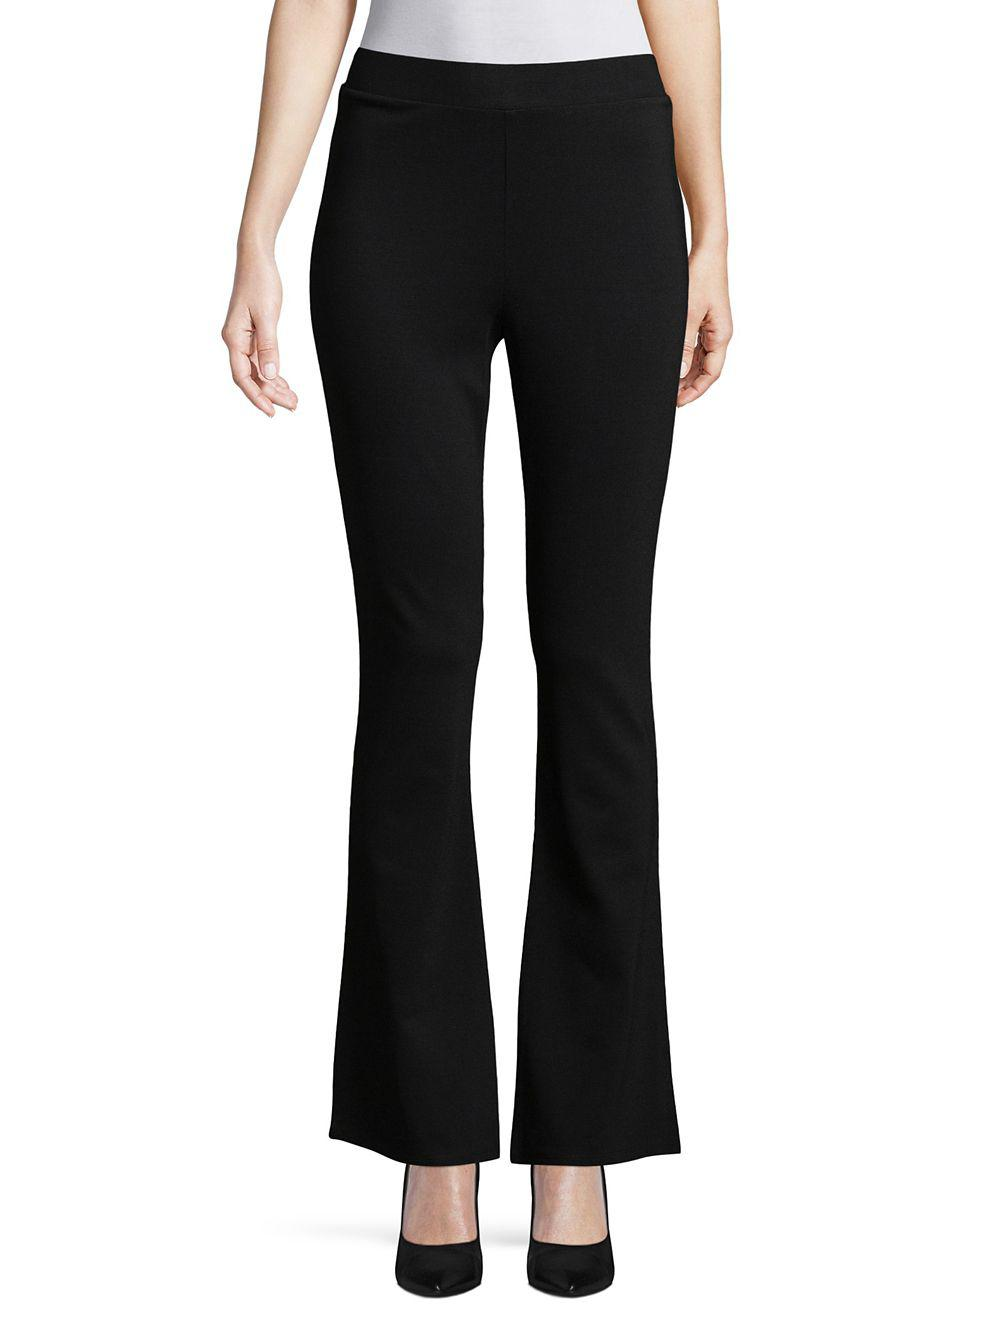 8ac74c042e Lyst - Vince Camuto Ponte Flare Leggings in Black